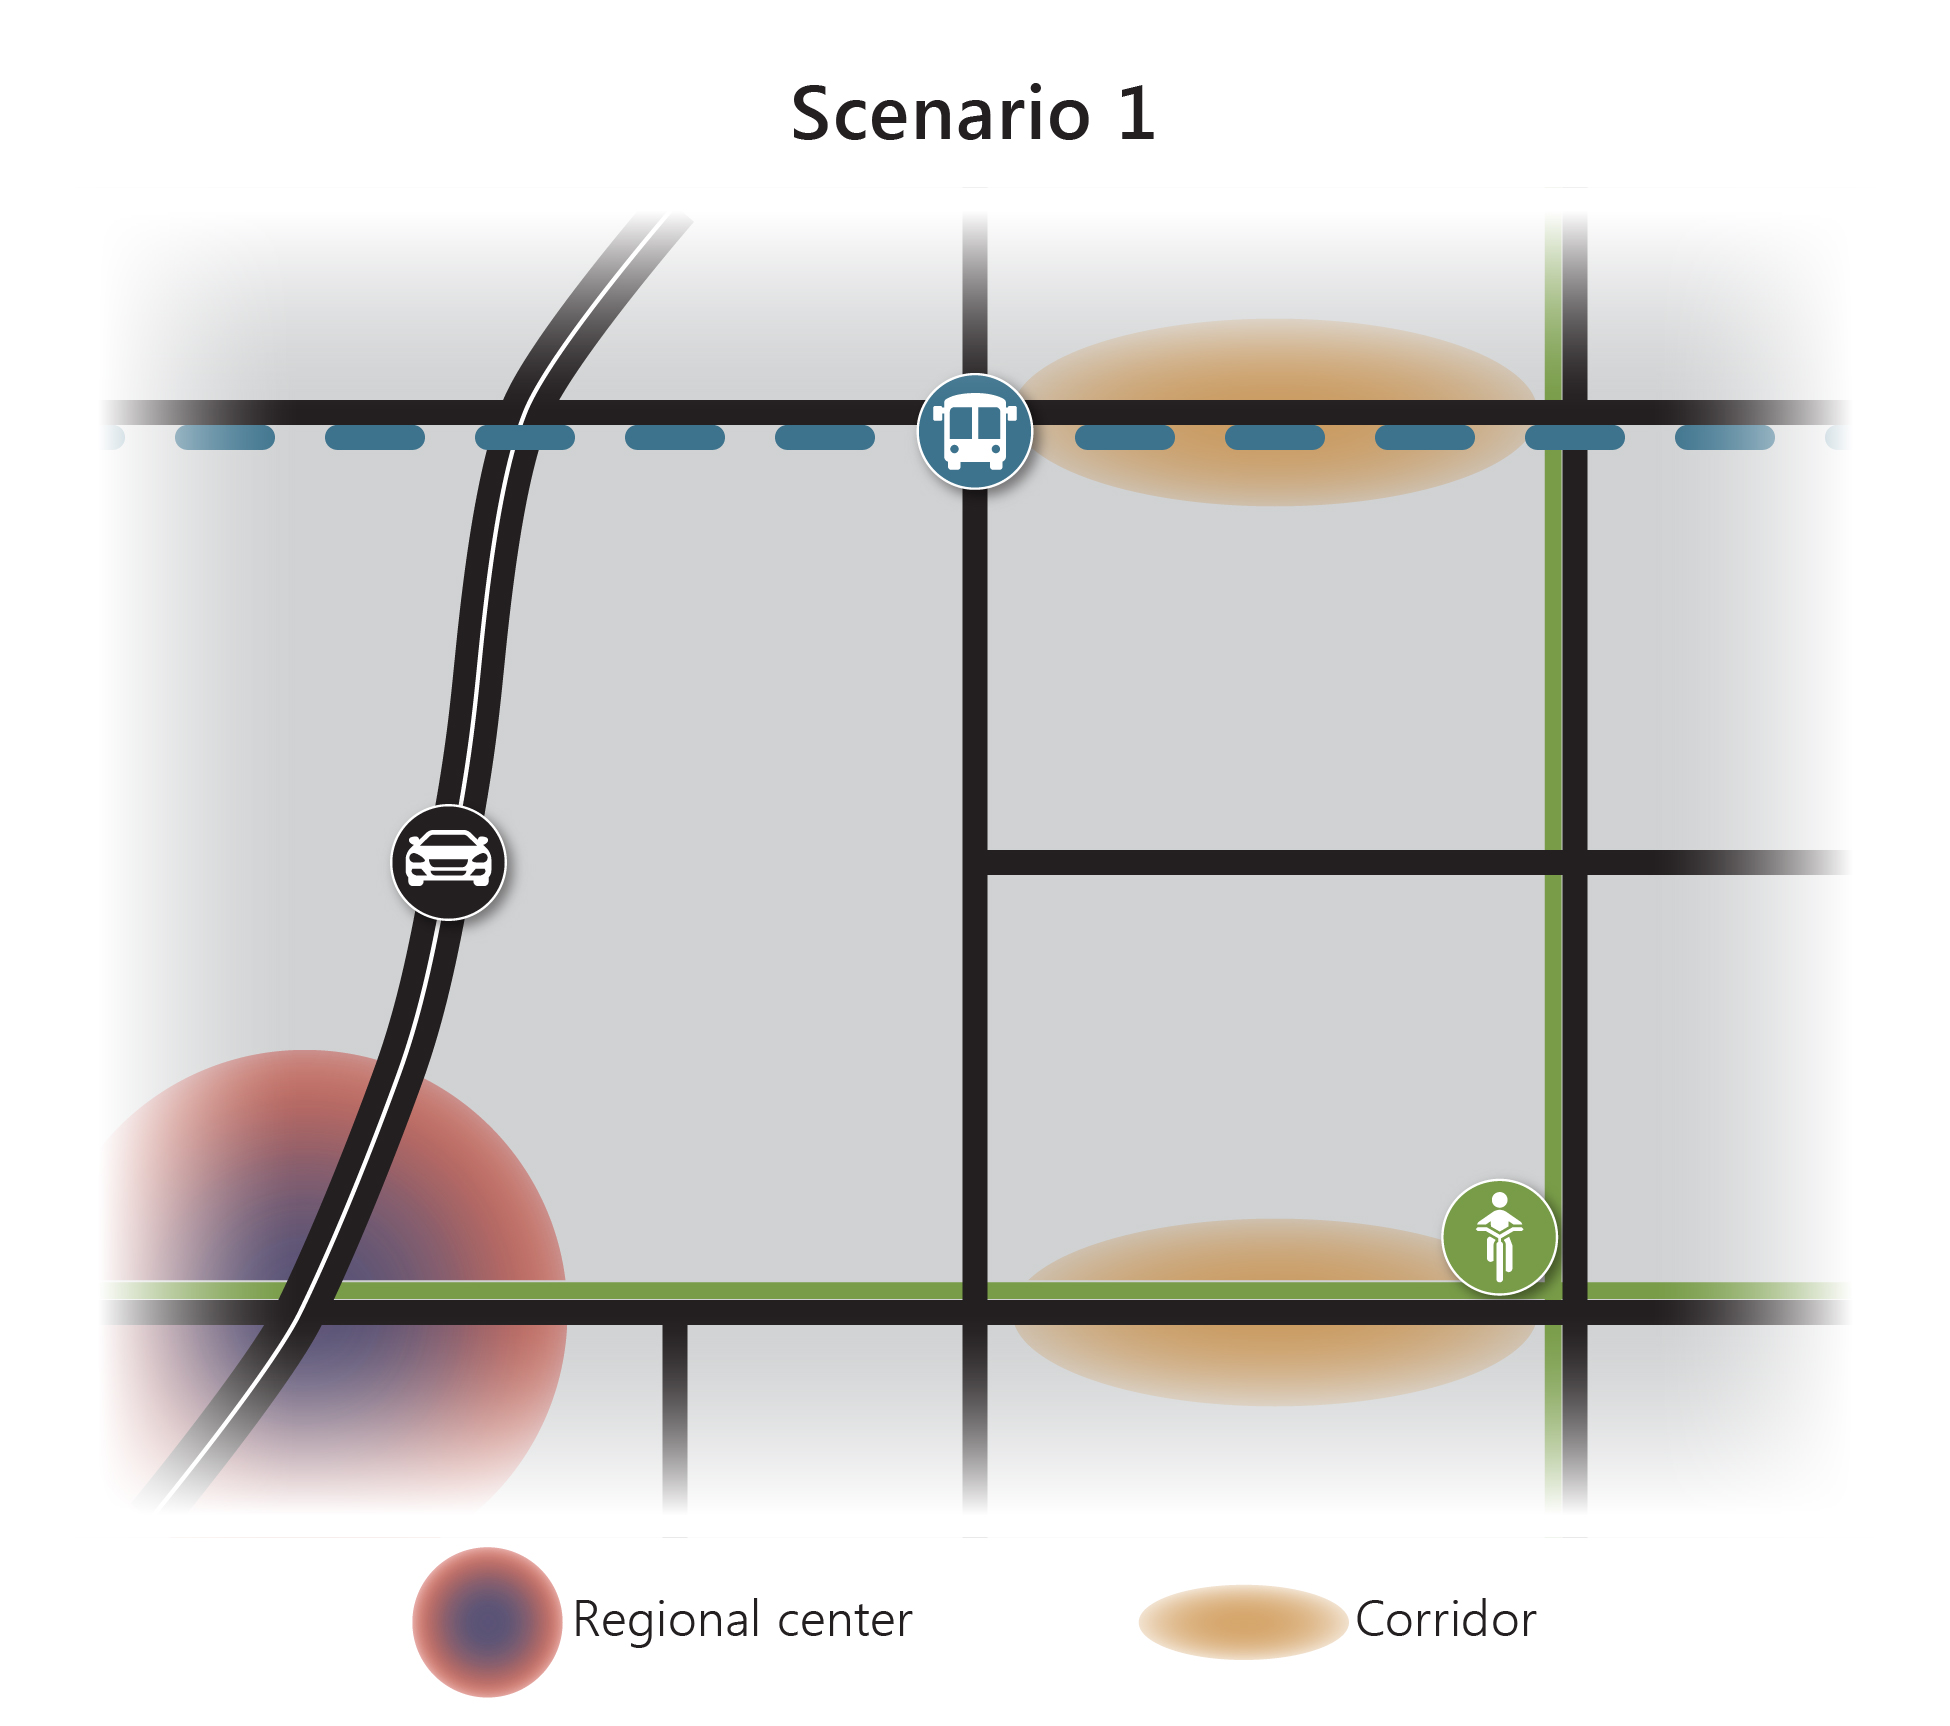 Simple Graphic Depicting Scenario 1, Which Illustrates The Future Based On Current Plans And Trends.